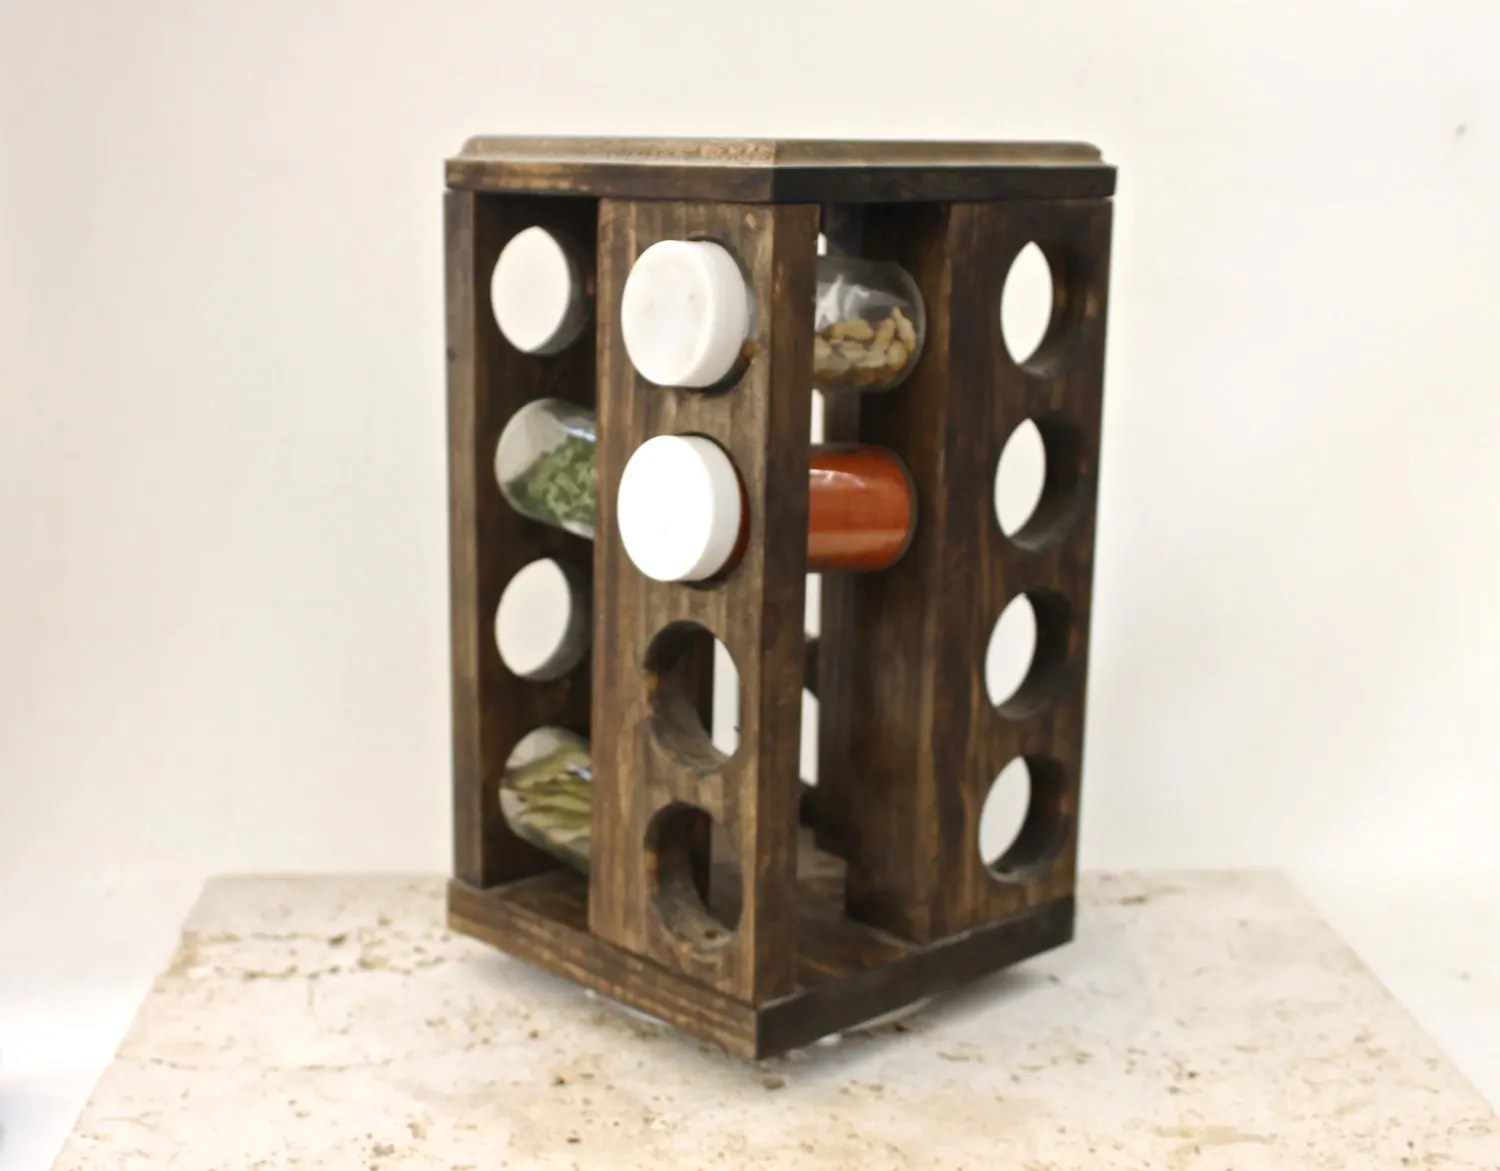 revolving spice racks for kitchen countertop ideas cheap rotating rack rustic woodspice by arrayanddisplay